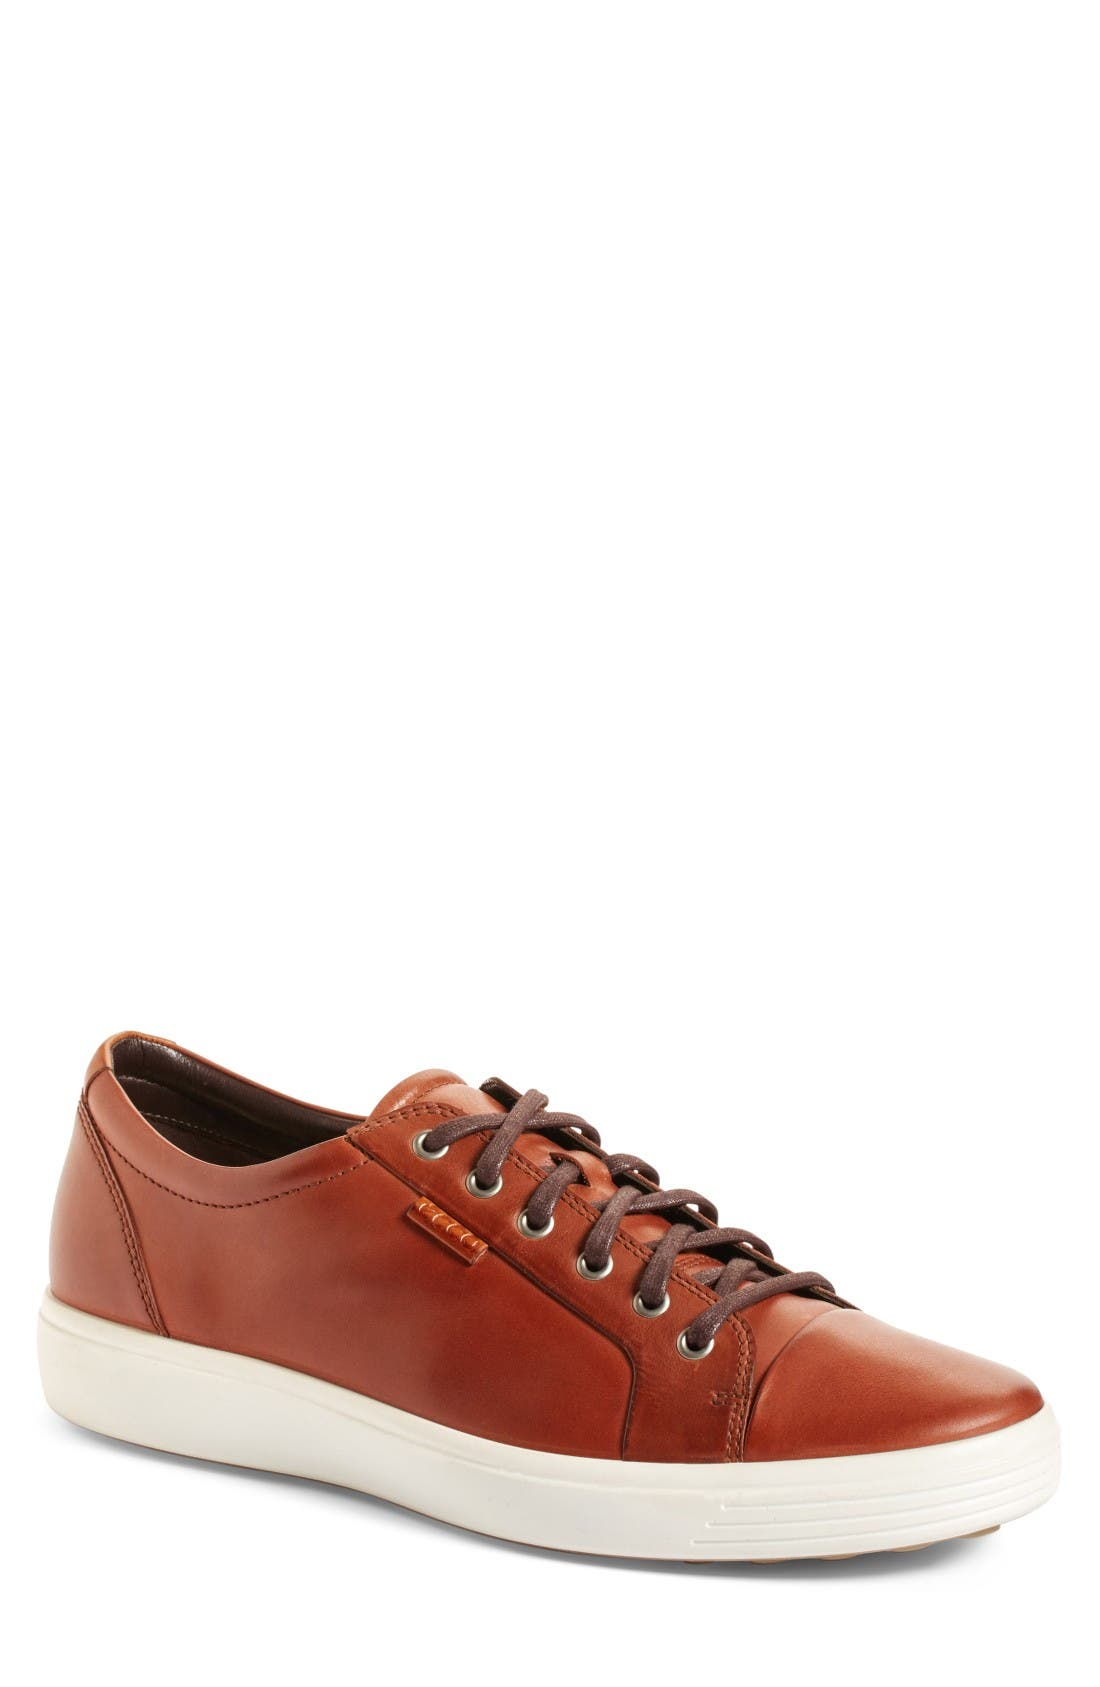 Alternate Image 1 Selected - ECCO Soft VII Lace-Up Sneaker (Men)